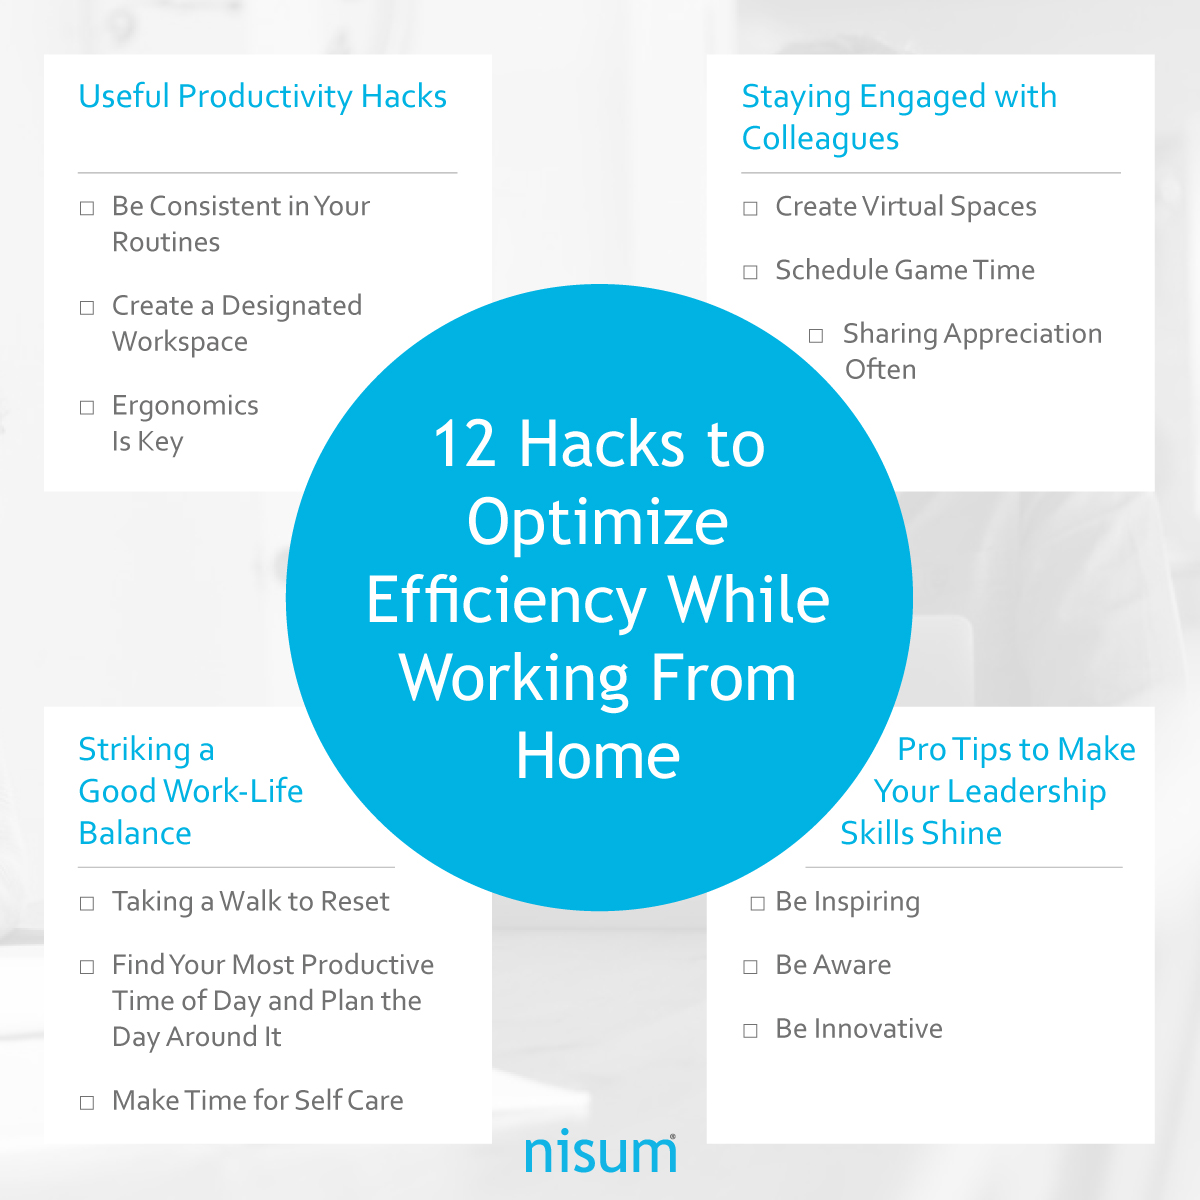 12-hacks-to-optimize-efficiency-while-working-from-home-infographic-banner-8